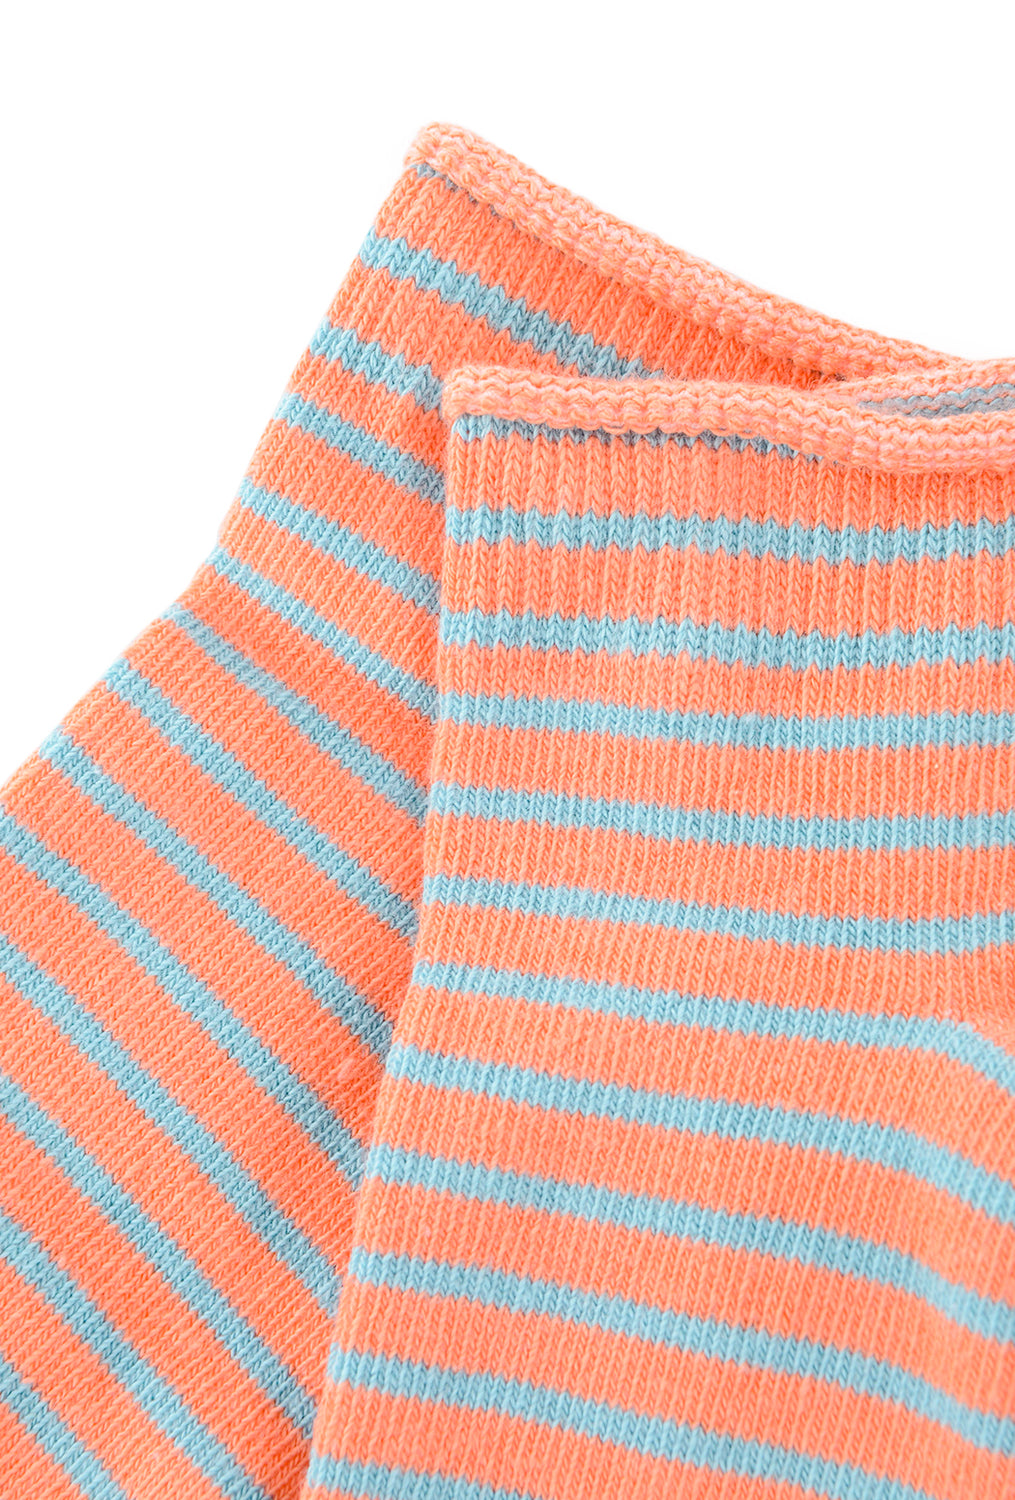 Little River Sock Mill Striped Bootie SS18, Salmon/Slate